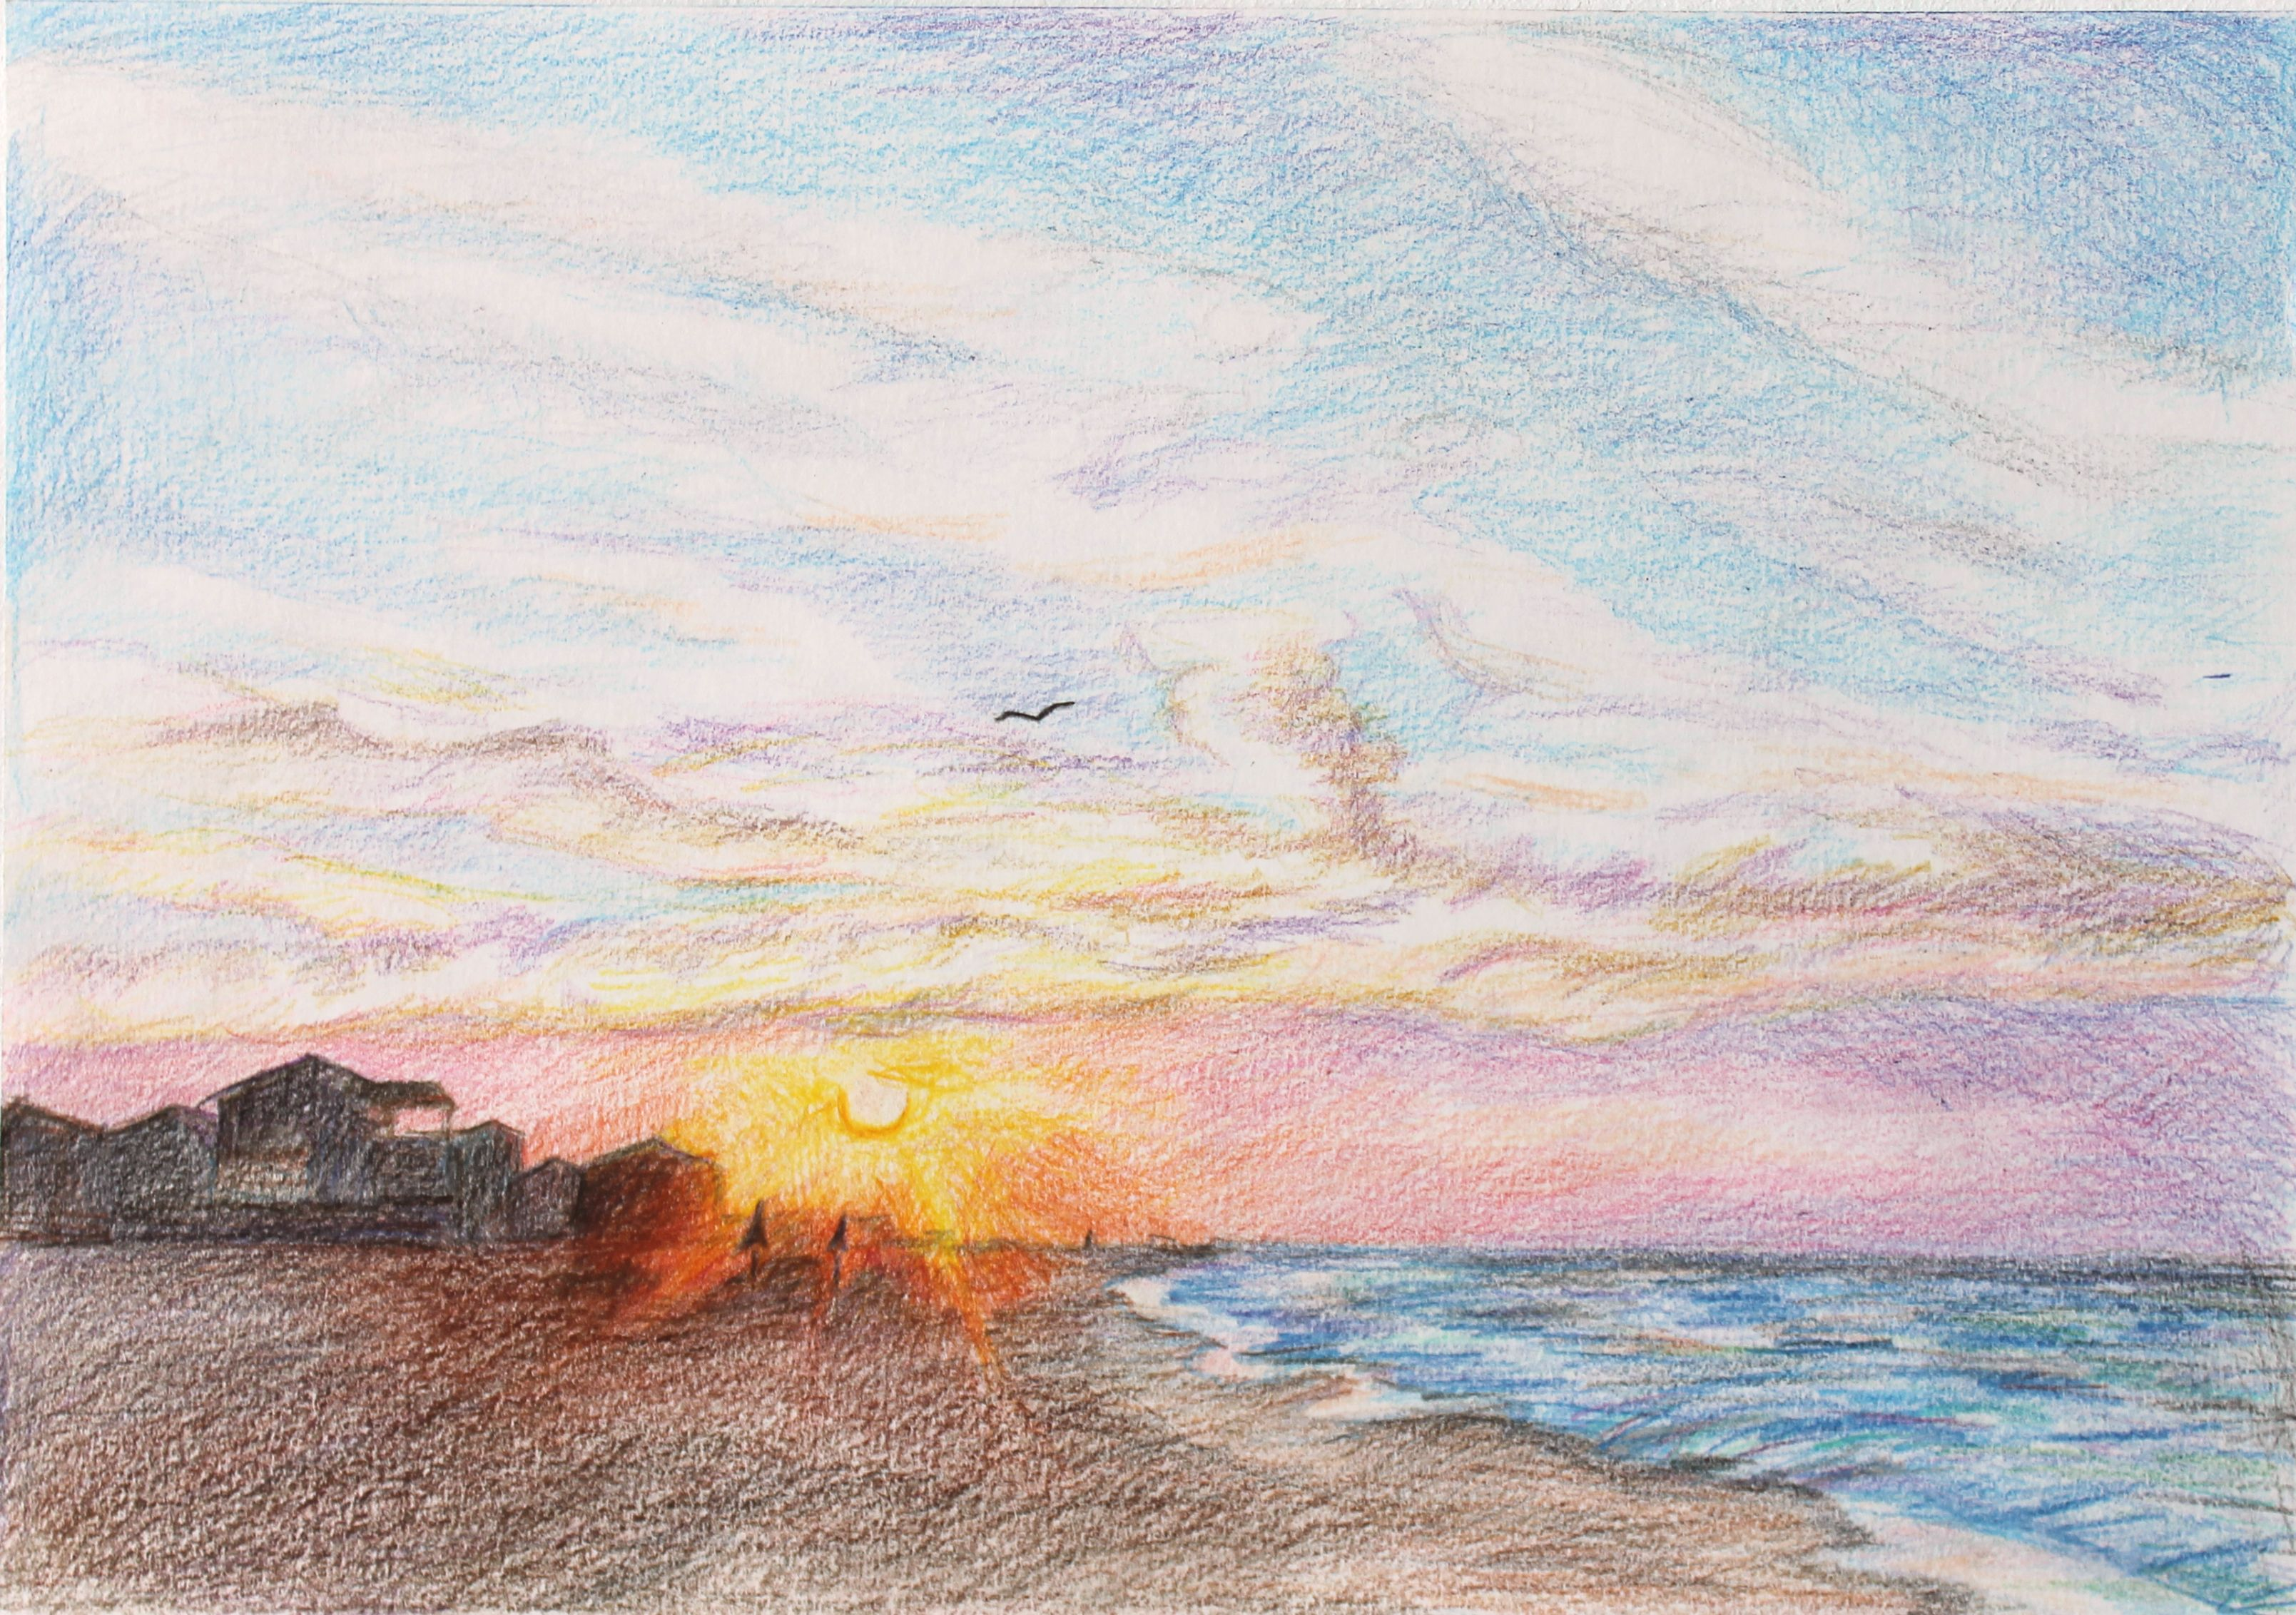 Gulf Shores Al 2015 By Oksana Berko Colored Pencils Drawing